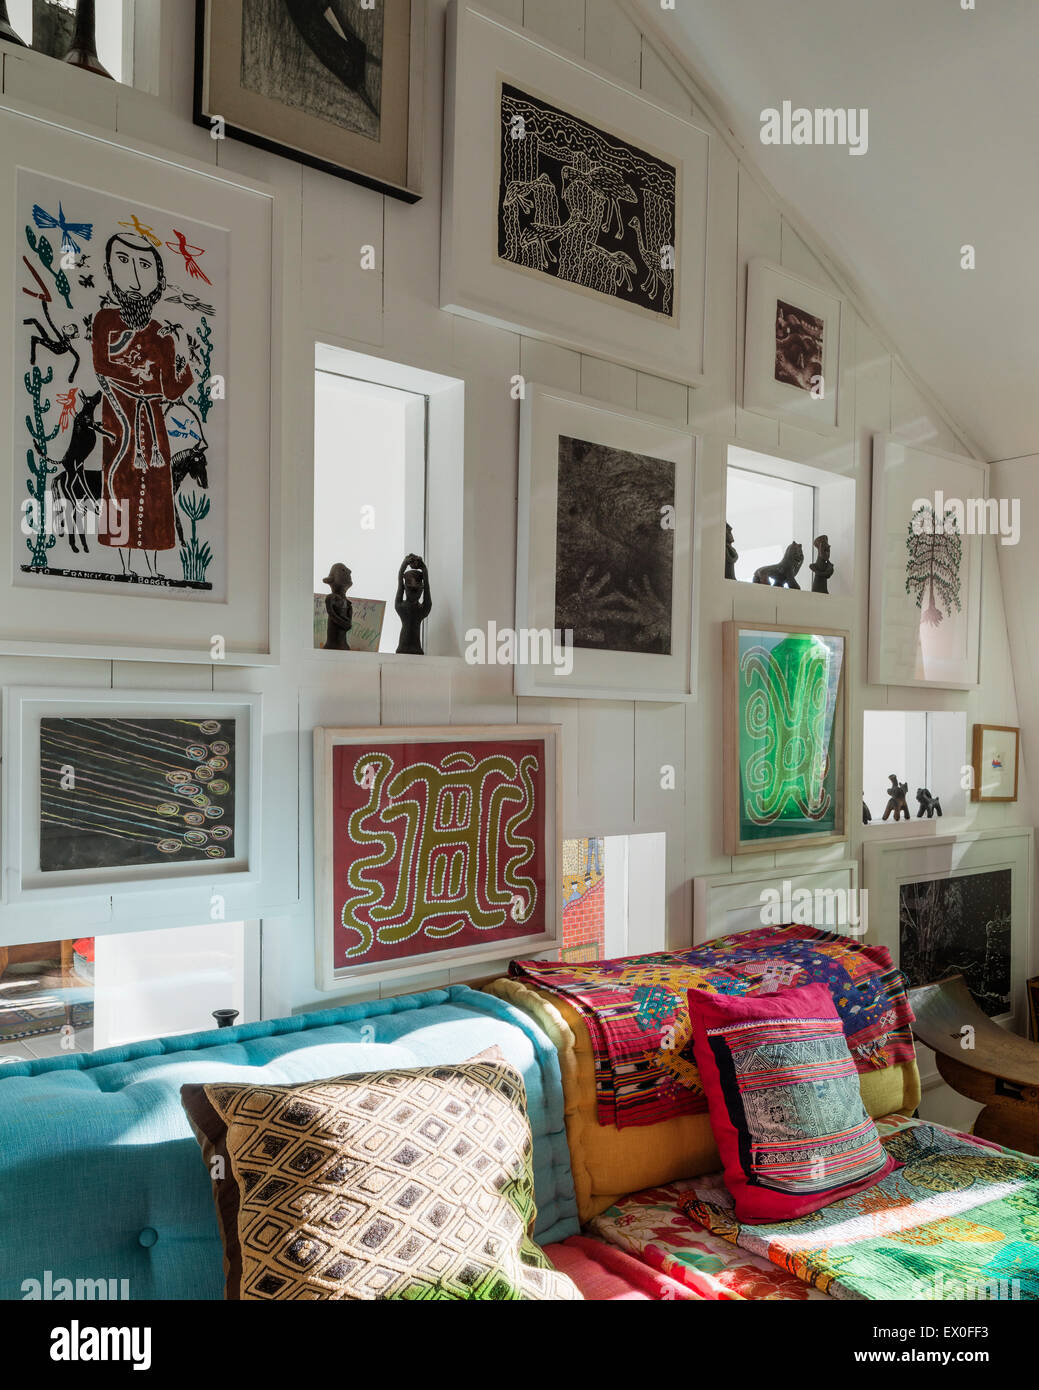 Assorted art on wall including work by J Borges and J Pike above blue buttoned sofa with Guatemalan textiles - Stock Image